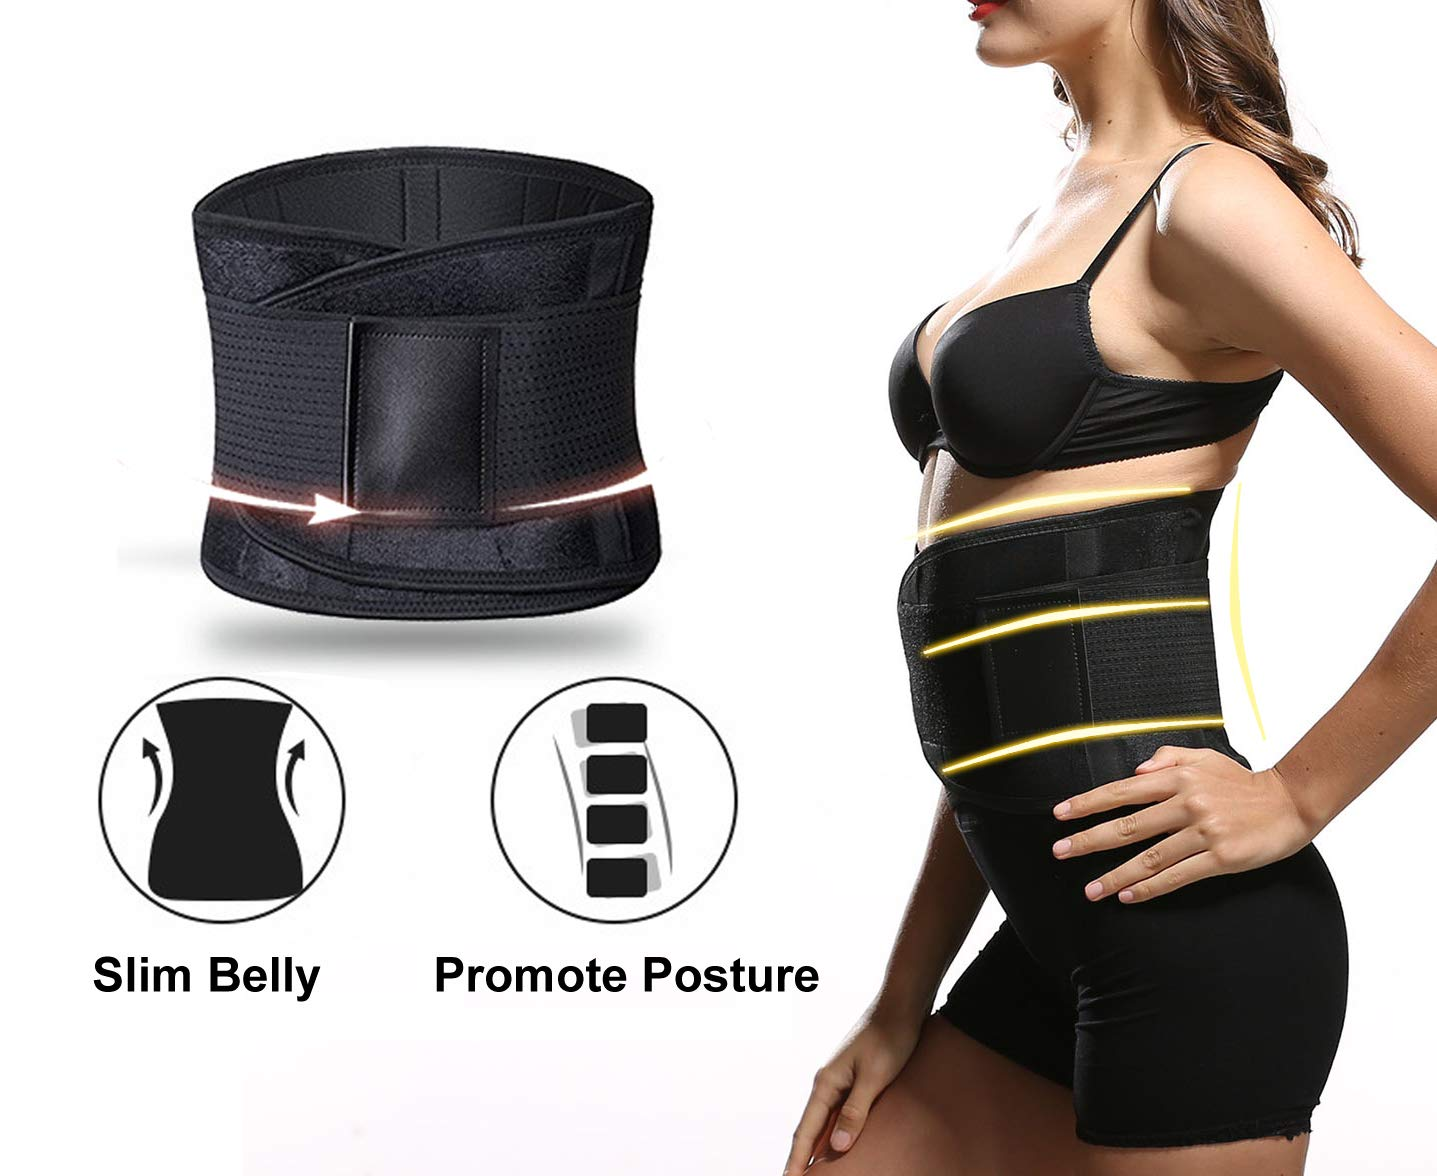 Neoprene Hourglass Slimming Body Shaper,Compression Band Workout,Adjustable Back Support Elastic Waist Ab Cincher Trainer Trimmer whamz Upgraded Version Sweat Belt Waist Trainer for Women /& Men